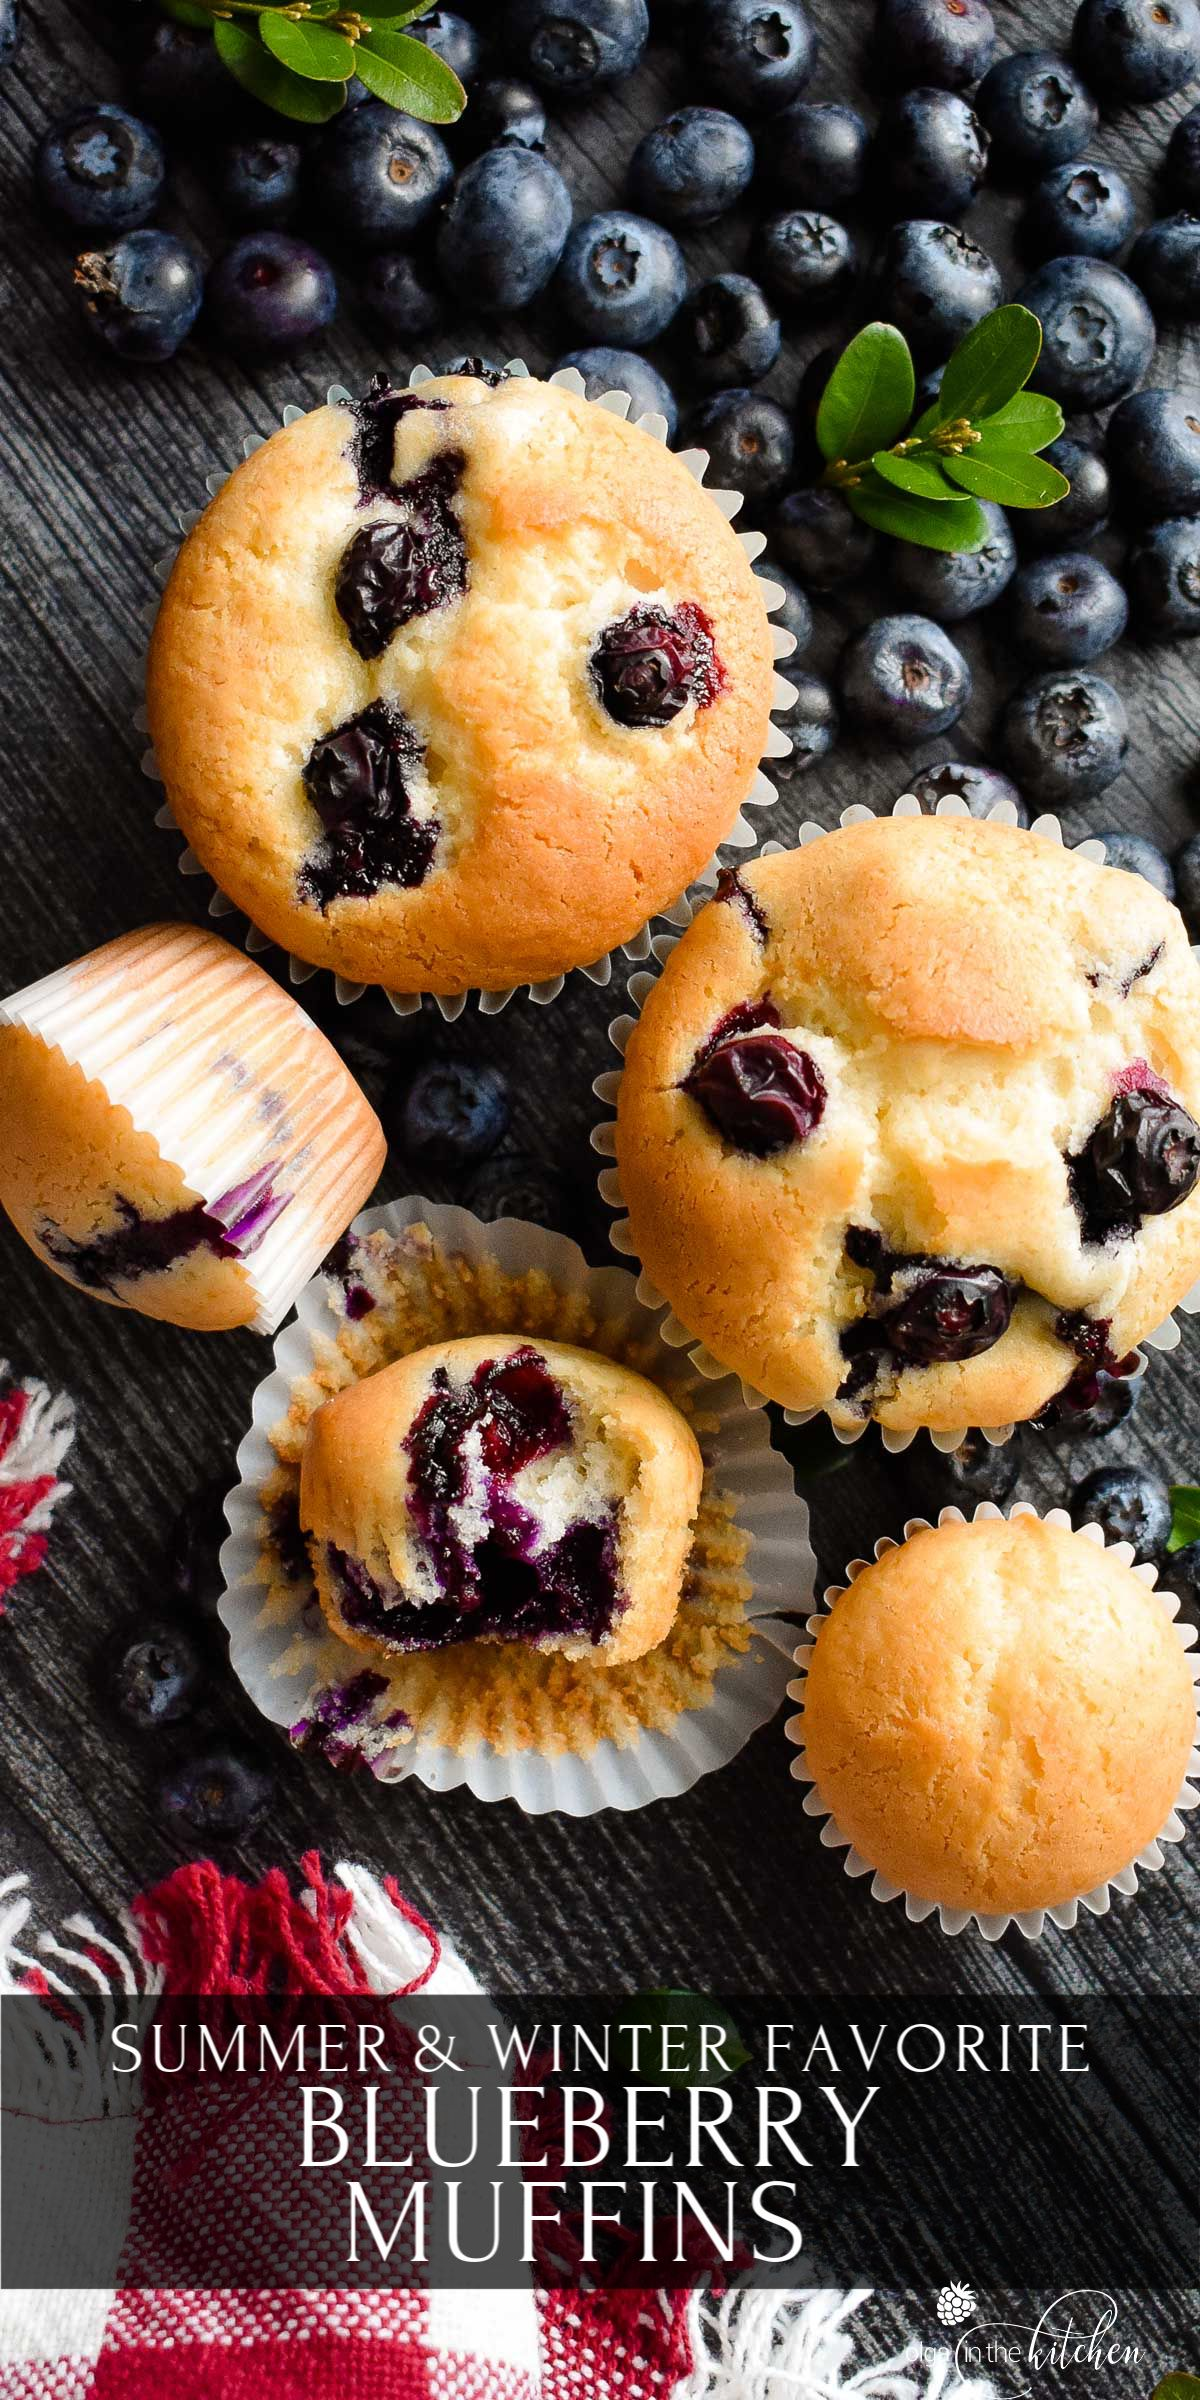 Sour Cream Blueberry Muffins Olga In The Kitchen Recipe In 2020 Sour Cream Blueberry Muffins Blue Berry Muffins Muffin Recipes Blueberry